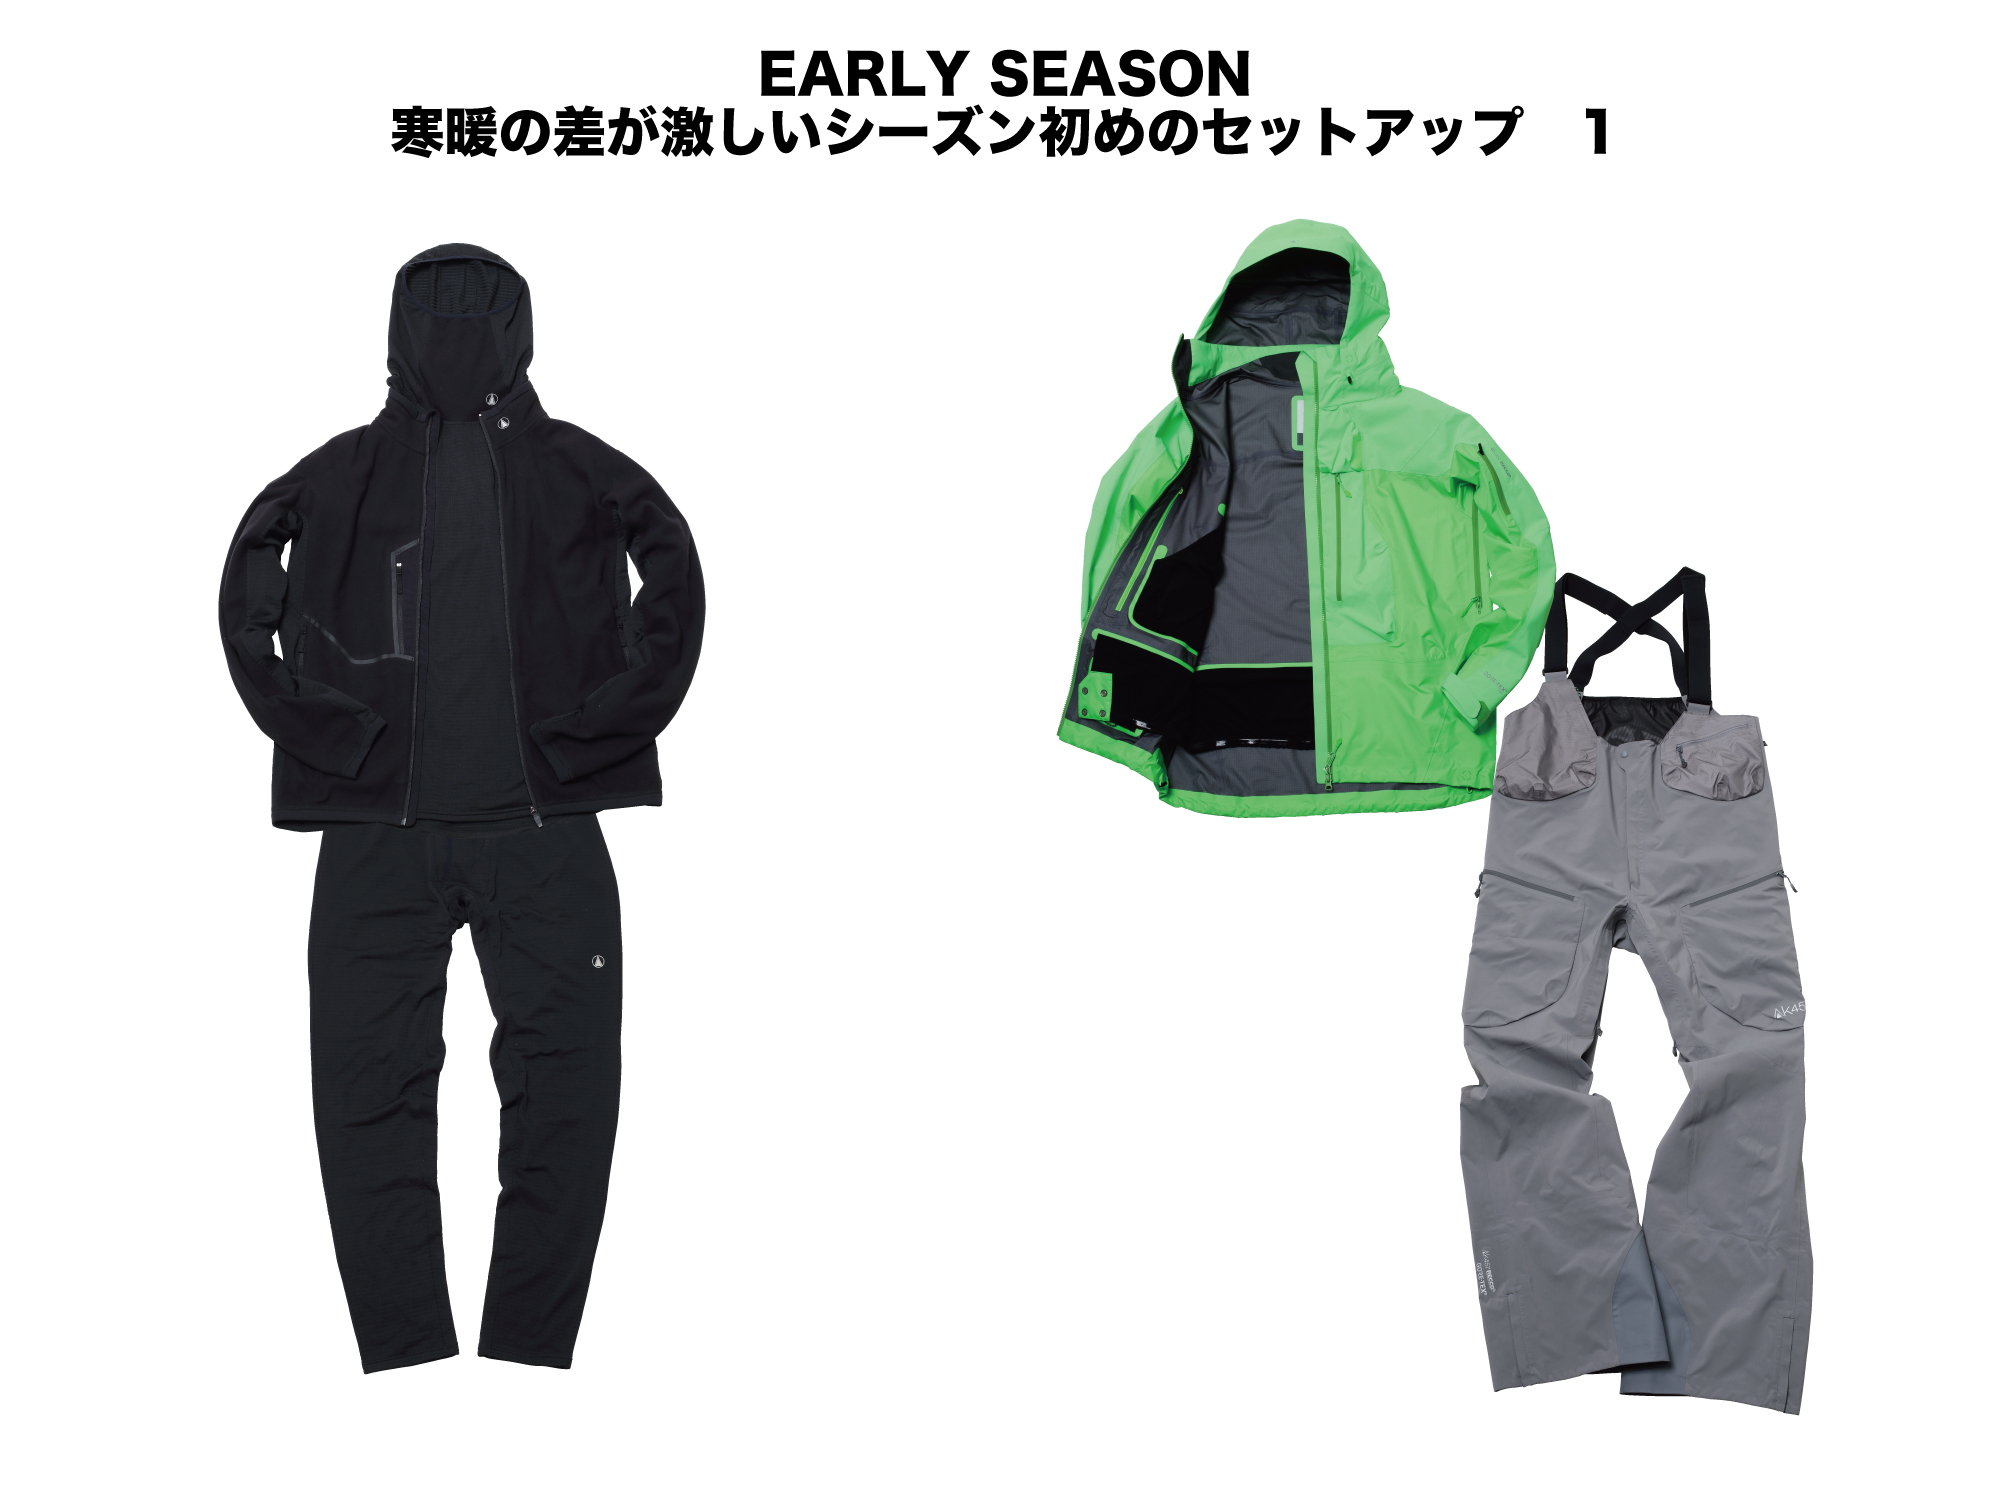 (上半身)(INNER)BASE LAYER HI NECK FLEECE:¥18,000+MICRO FLEECE JACKET:¥34,000 (OUTER)GUIDE JACKET:¥89,000 (下半身)(INNER)BASE LAYER PANT FLEECE:¥16,000 (OUTER)HI-TOP PANT:¥79,000